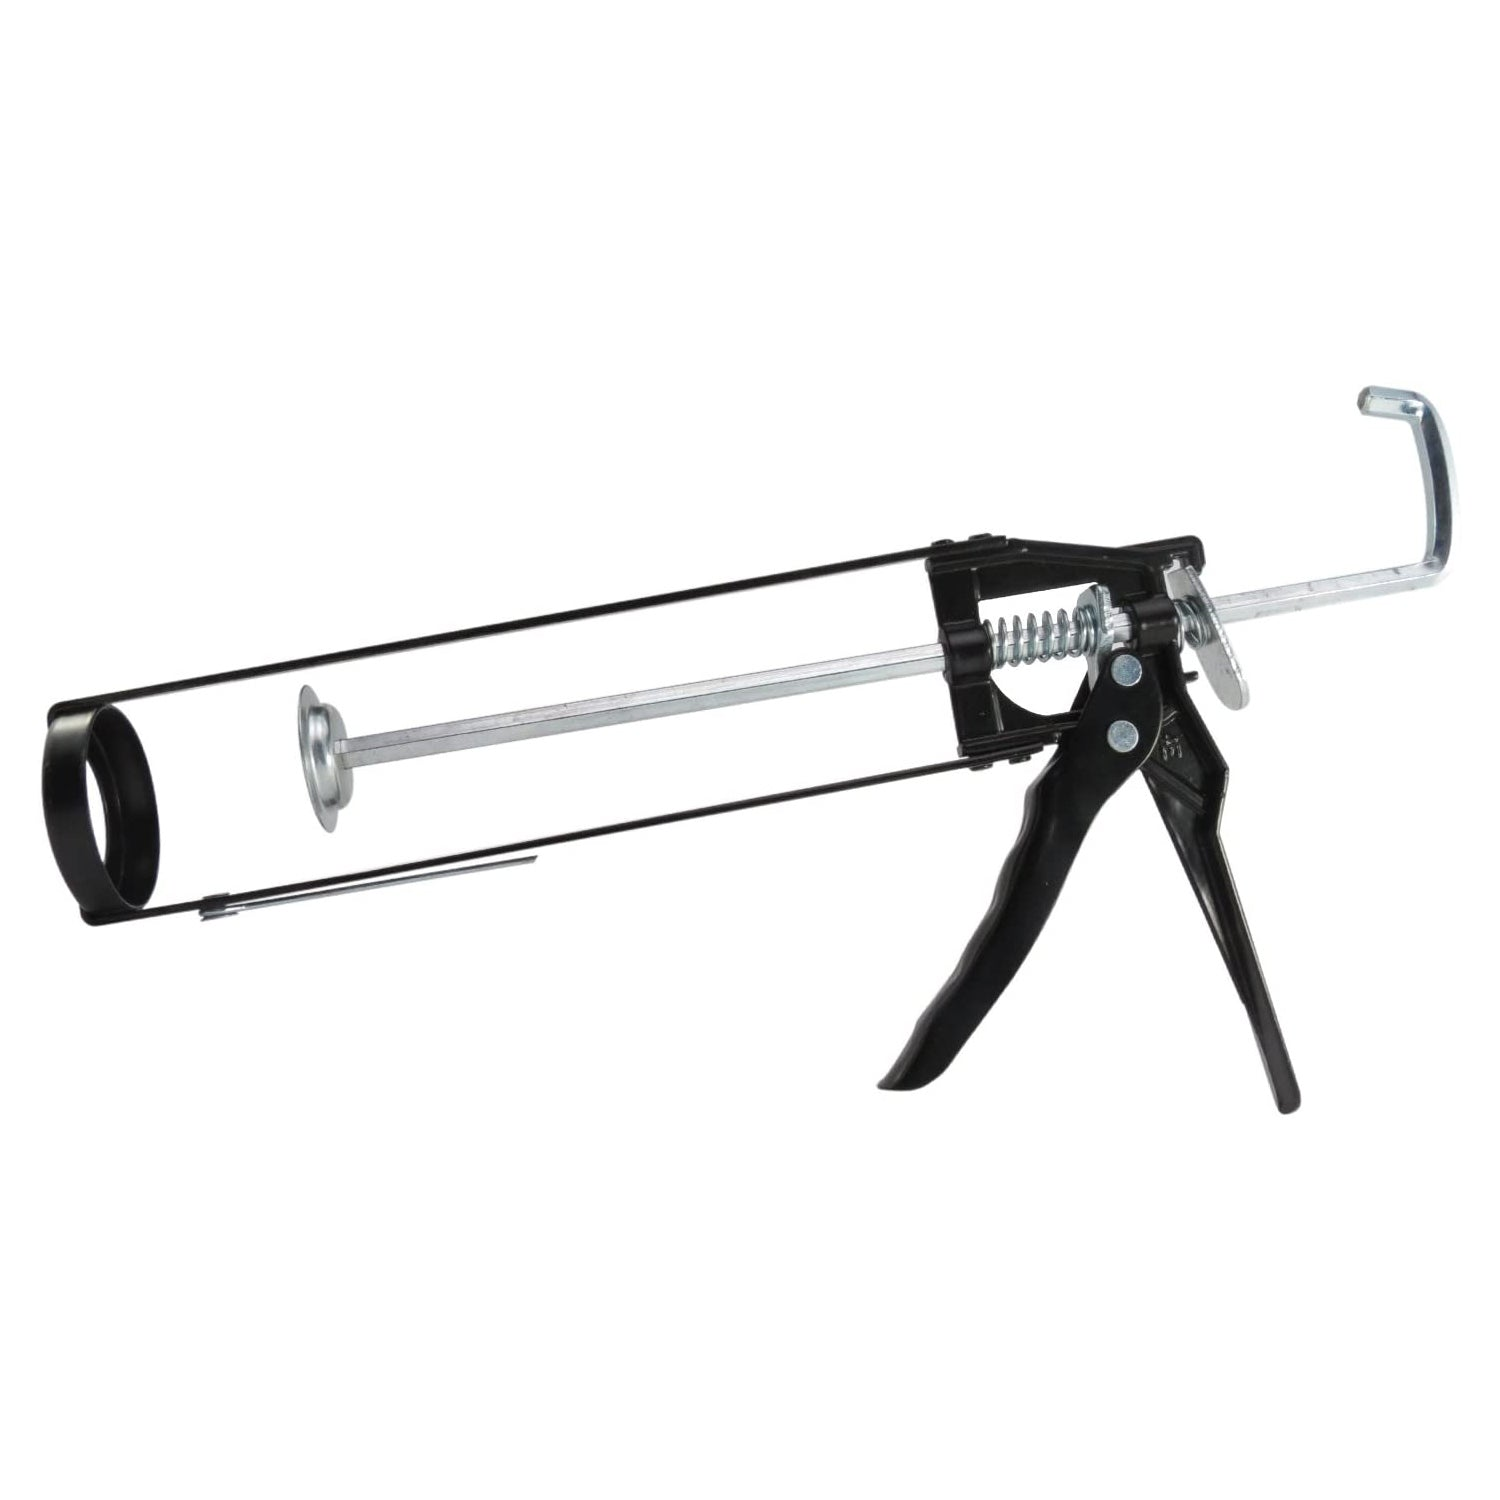 Dynamic Skeleton Style Caulking Gun, available at Harris Paints and BH Paints in the Caribbean.